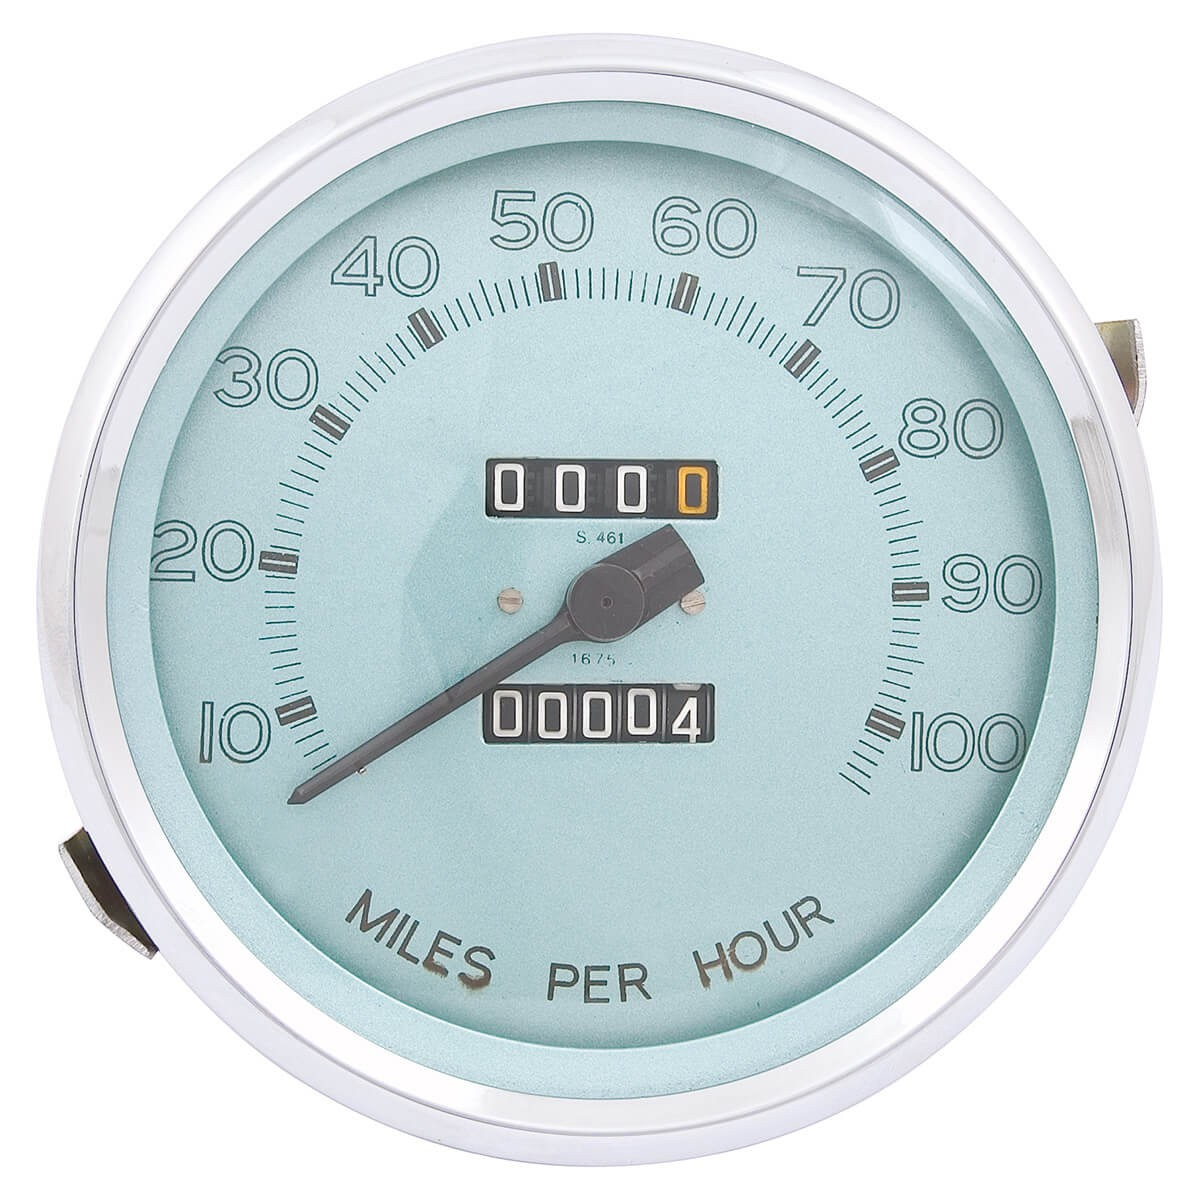 360-460 REPLICA SPEEDOMETER | Moss Motors